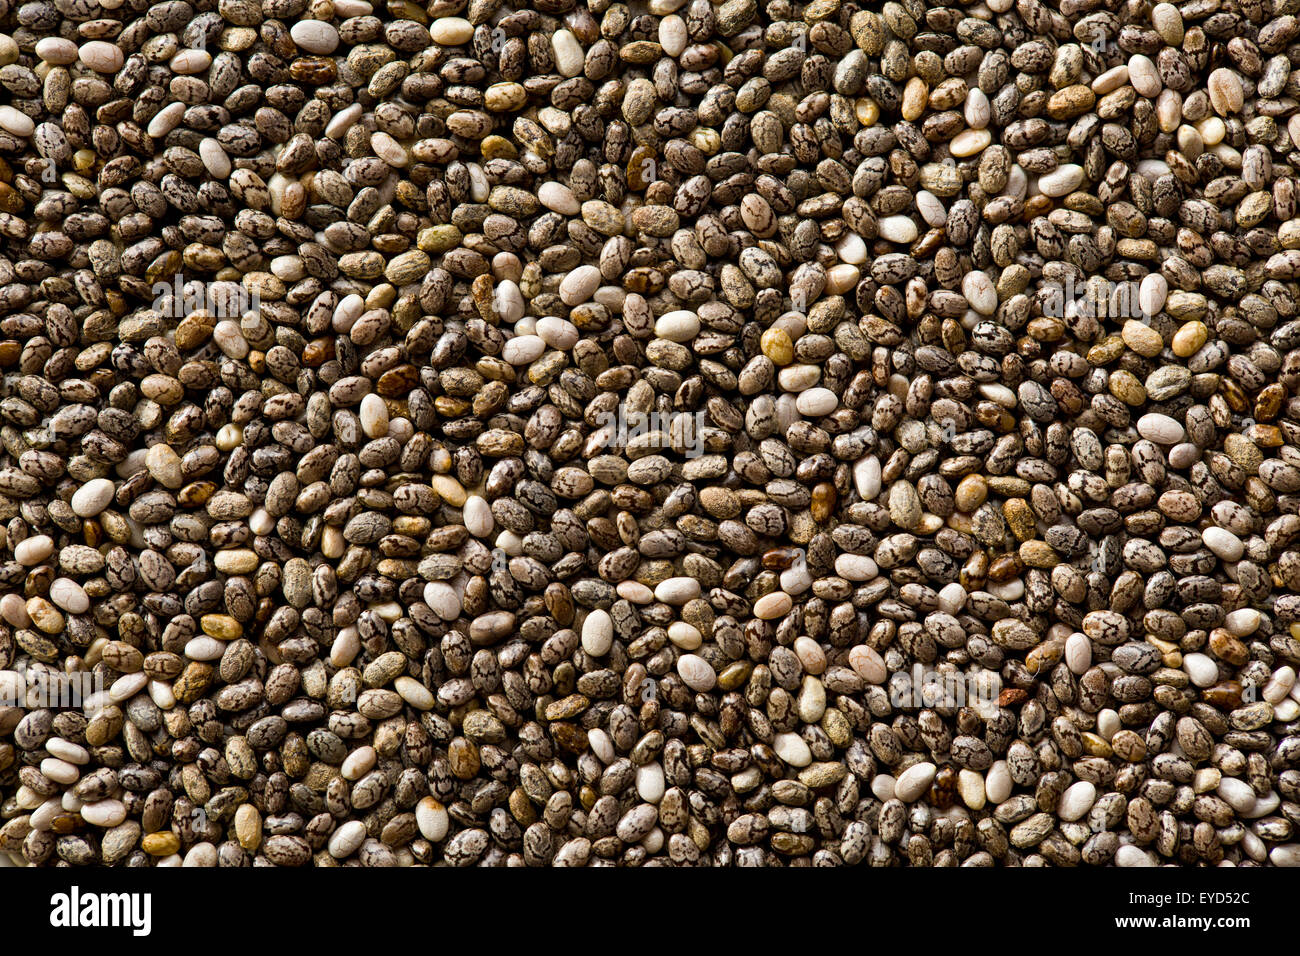 The chia seeds. Healthy superfood. - Stock Image